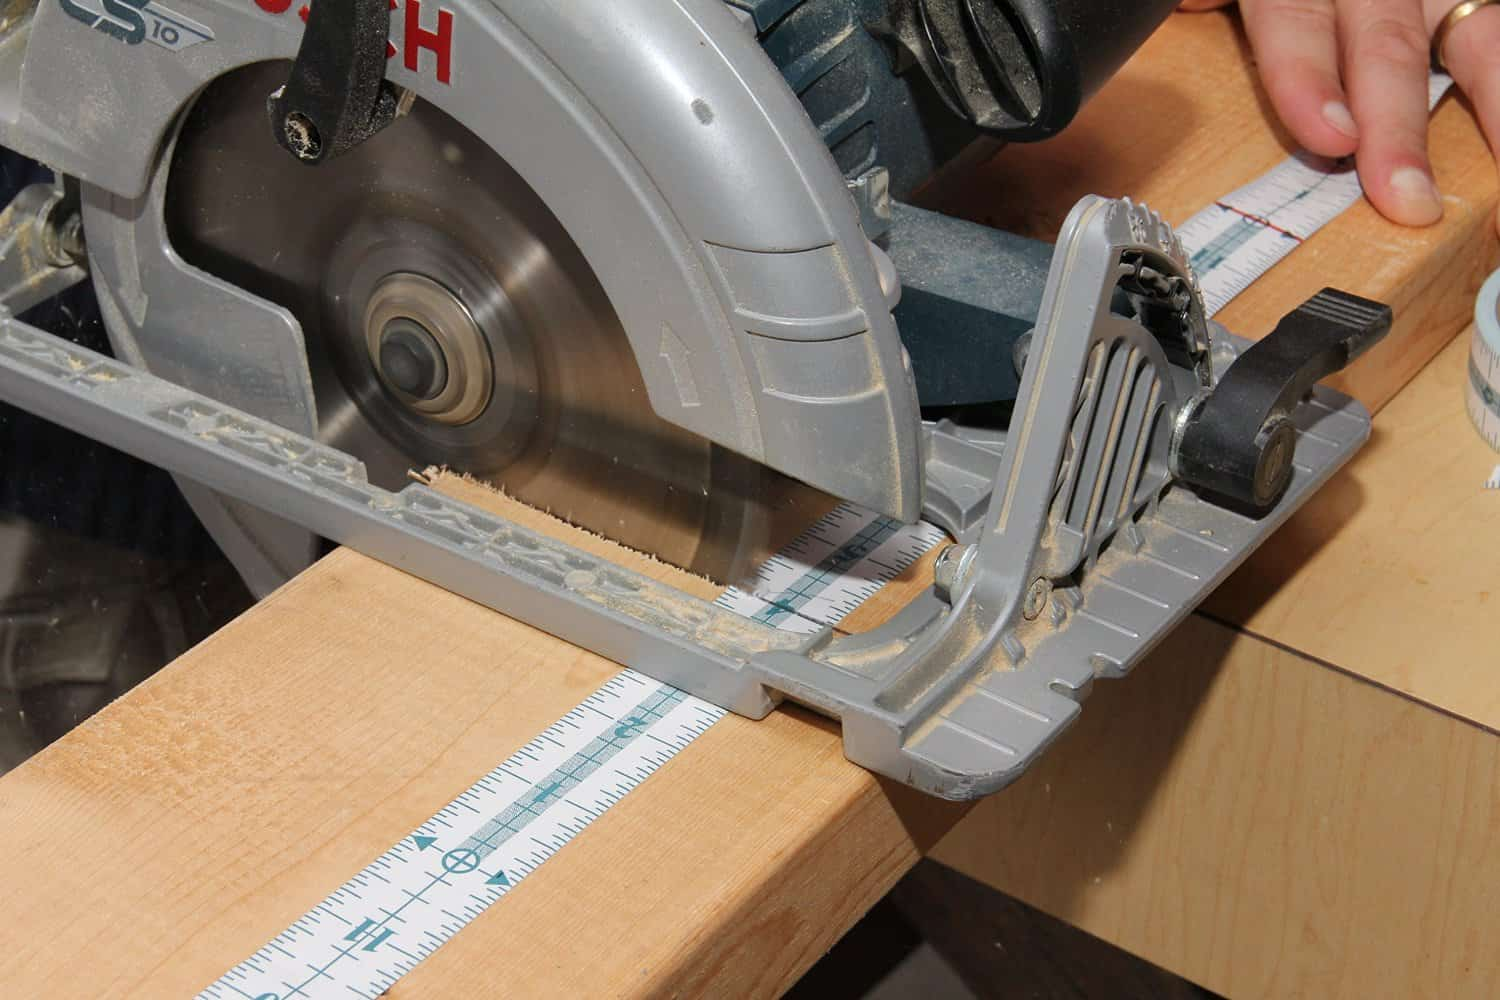 Measure It Adhesive Measuring Tape Saw Accurately